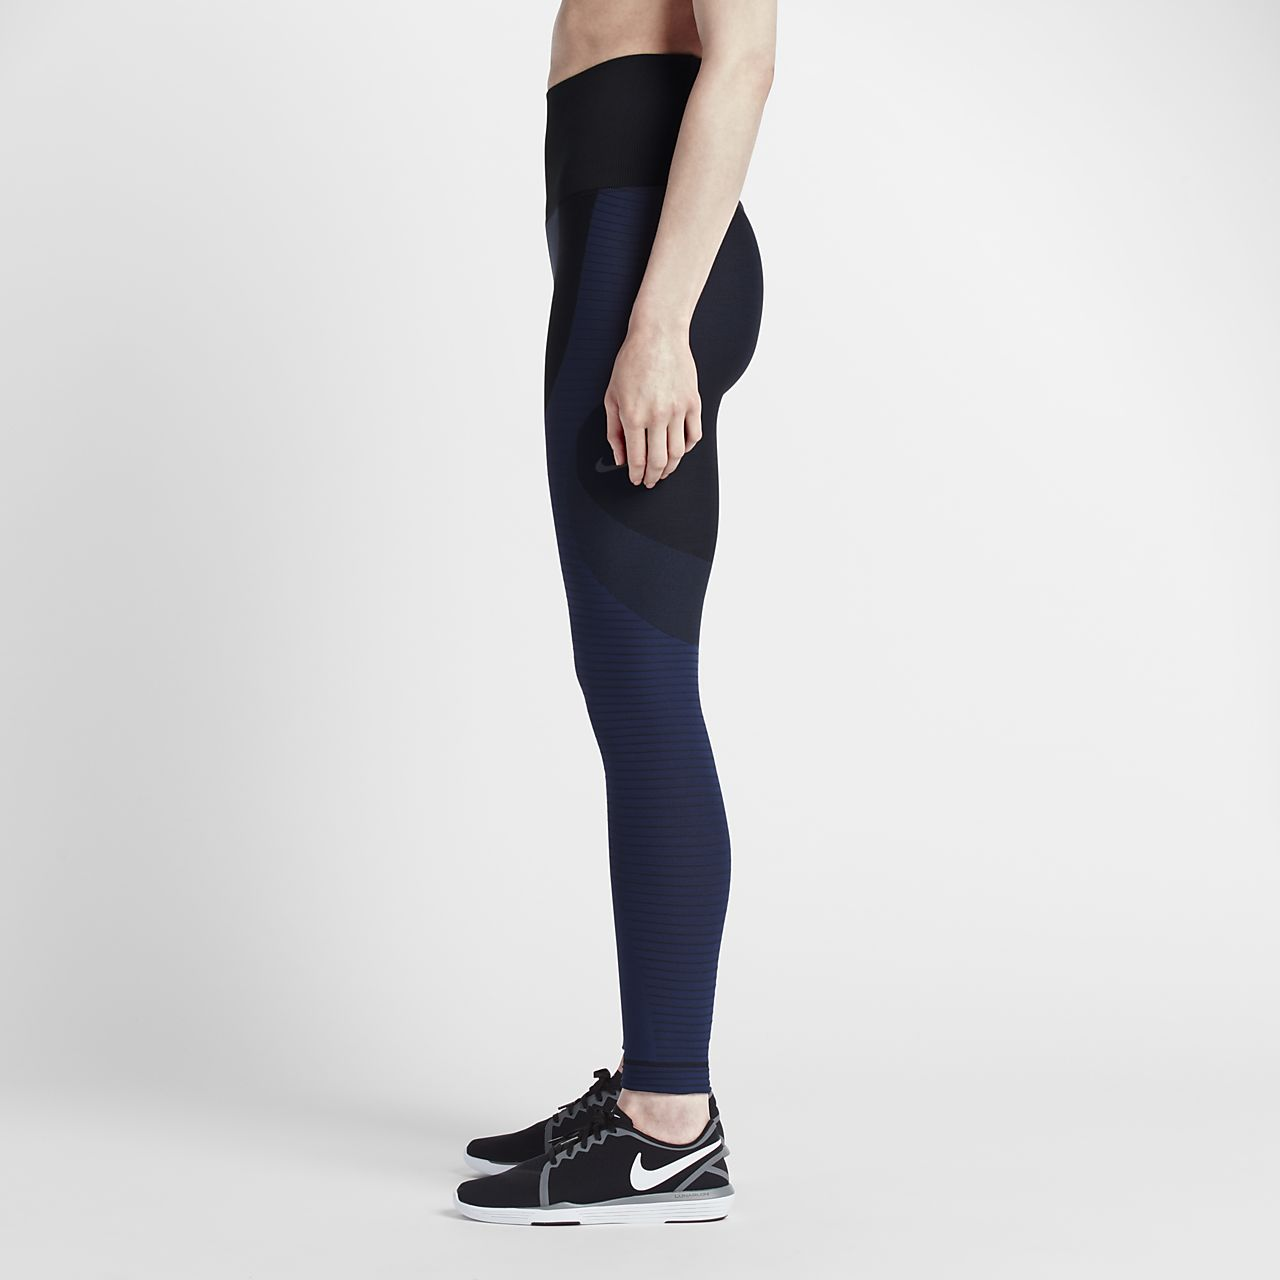 ... Nike Zoned Sculpt Women's High-Rise Training Tights